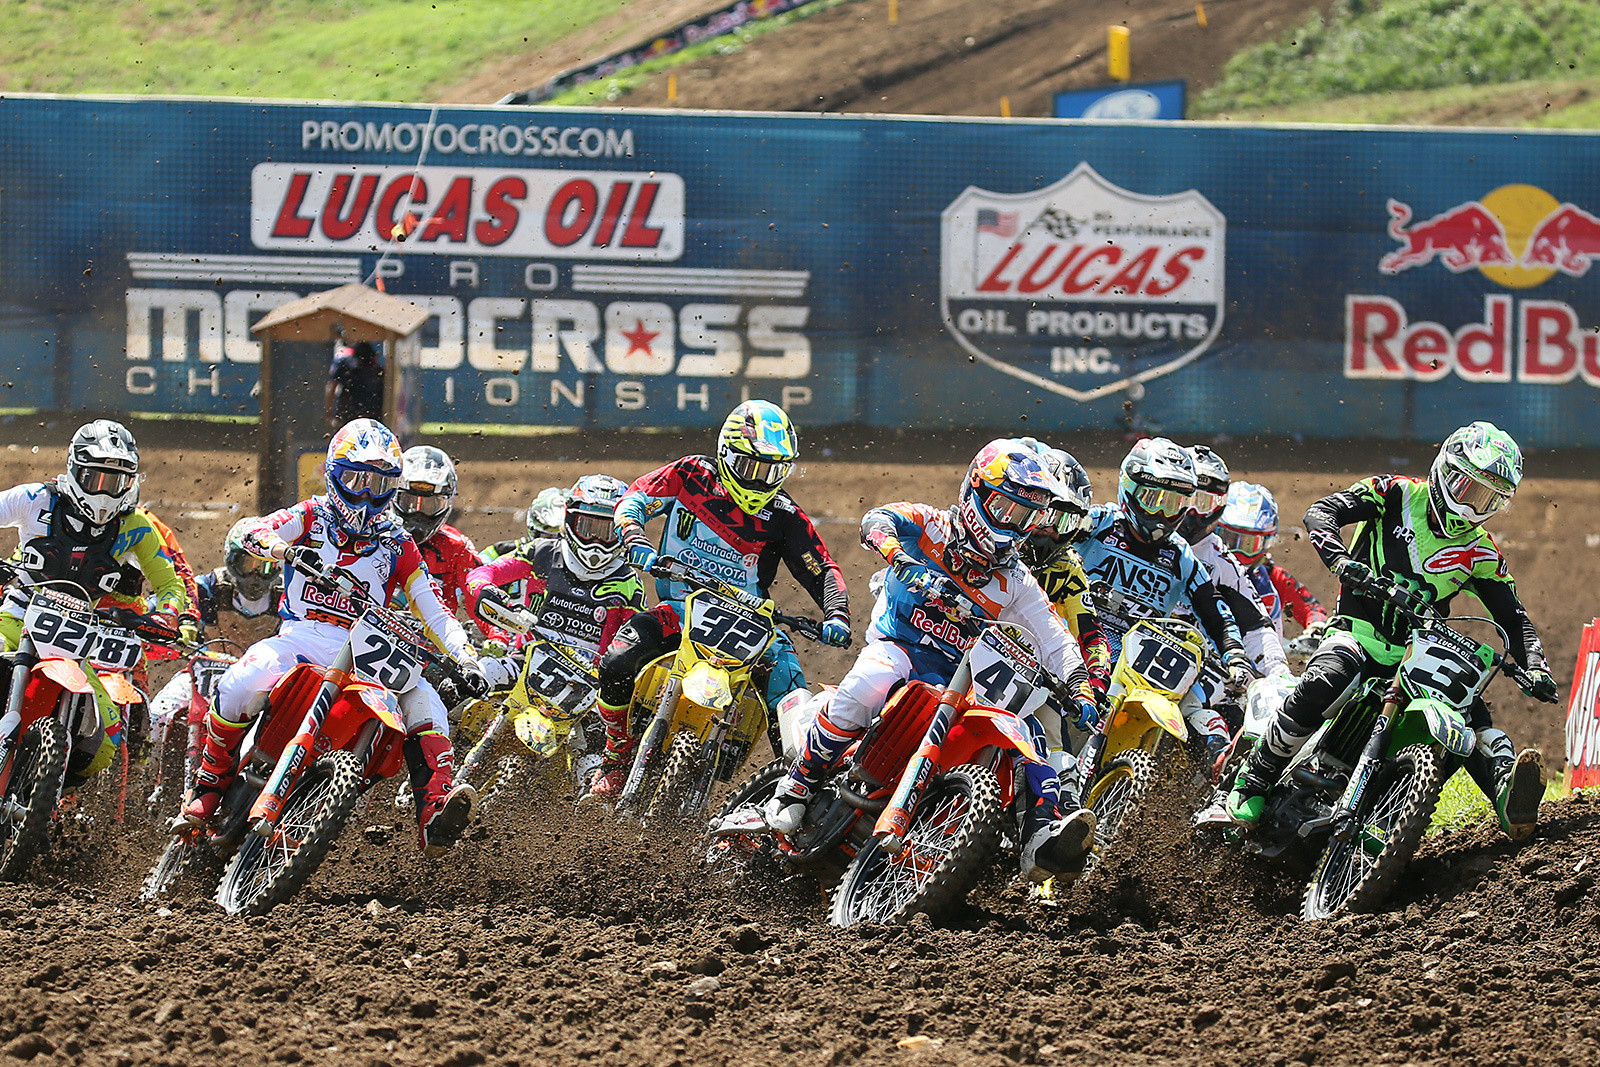 Trey Canard got the jump on the 450 pack in moto two, but Eli Tomac quickly took over the lead.